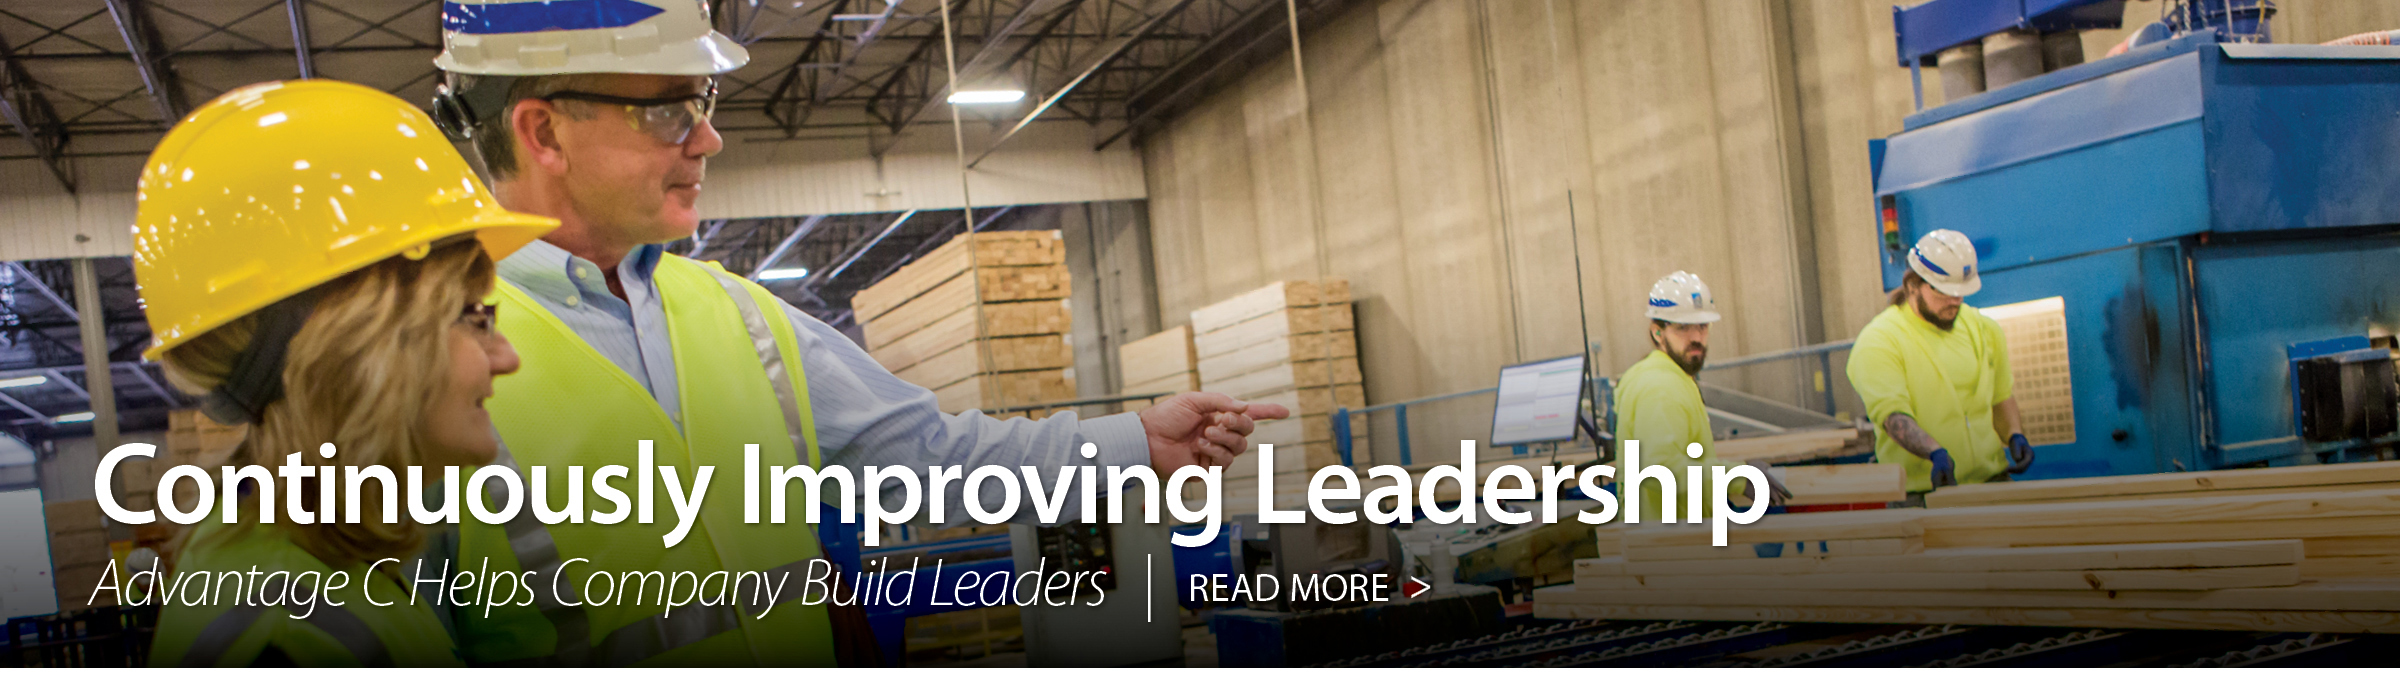 Continuously Improving Leadership Continuously Improving Leadership